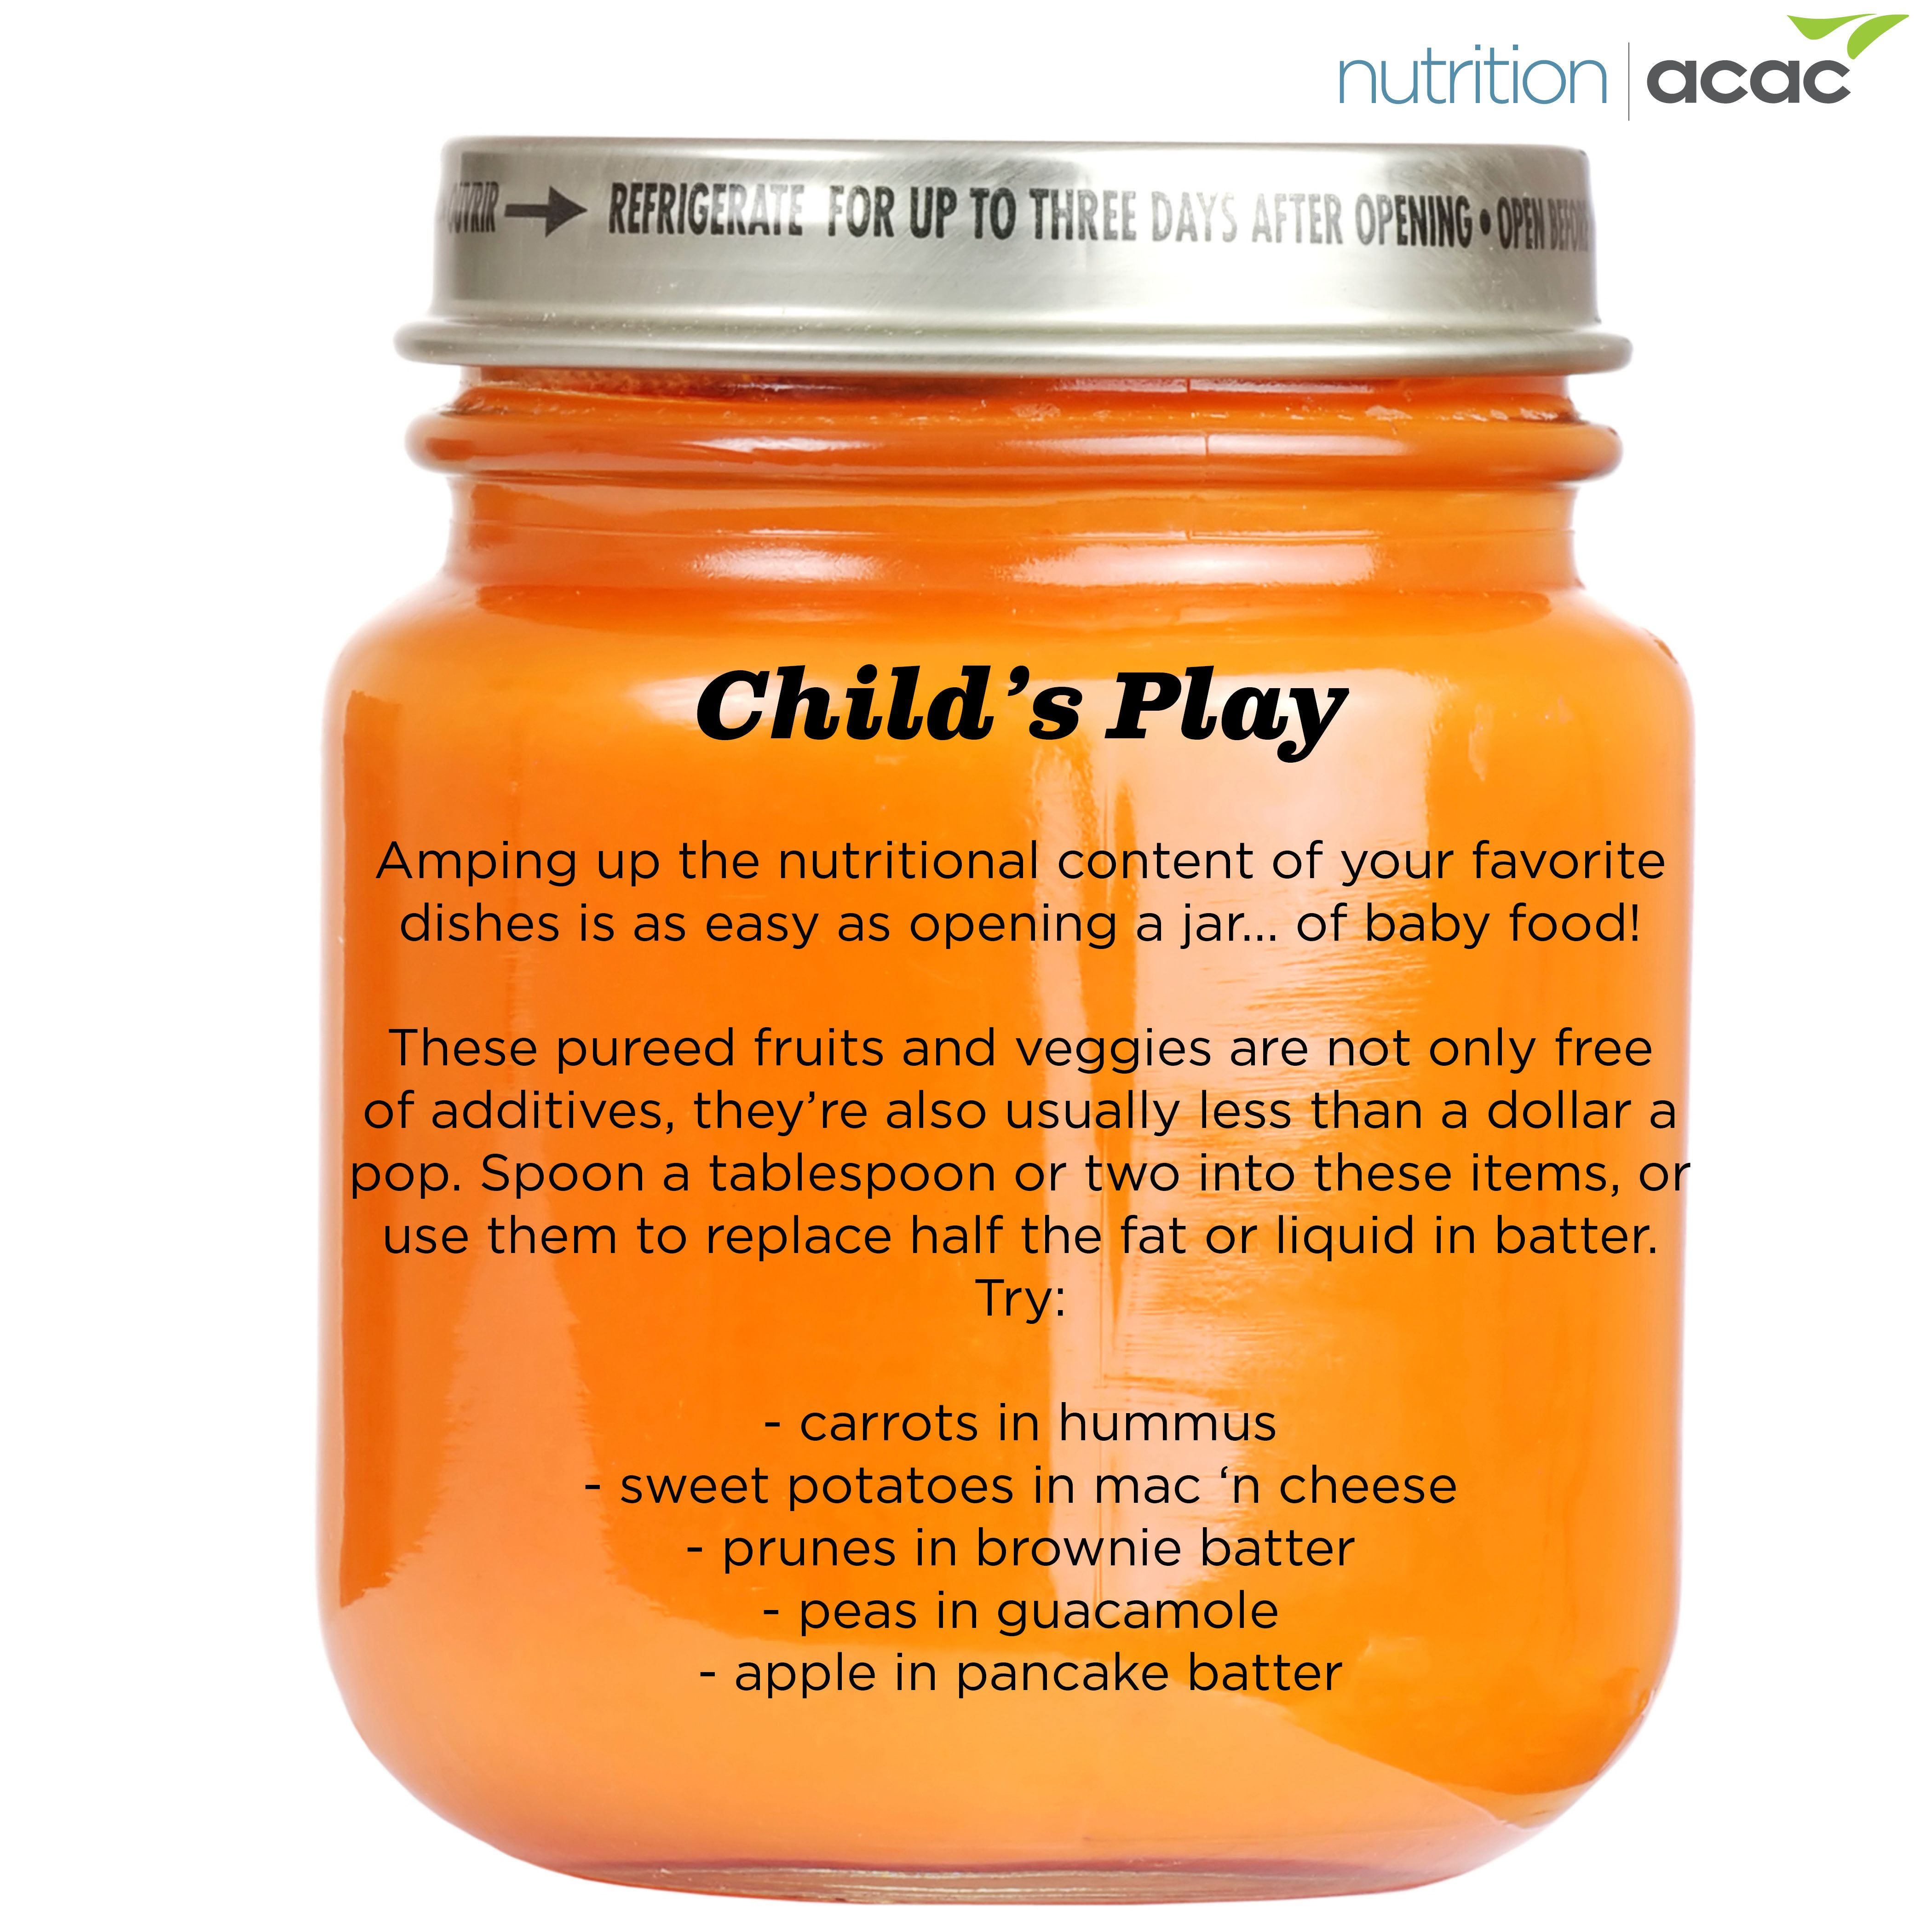 Baby food is a cheap and easy way to increase your nutritional intake! Who knew?